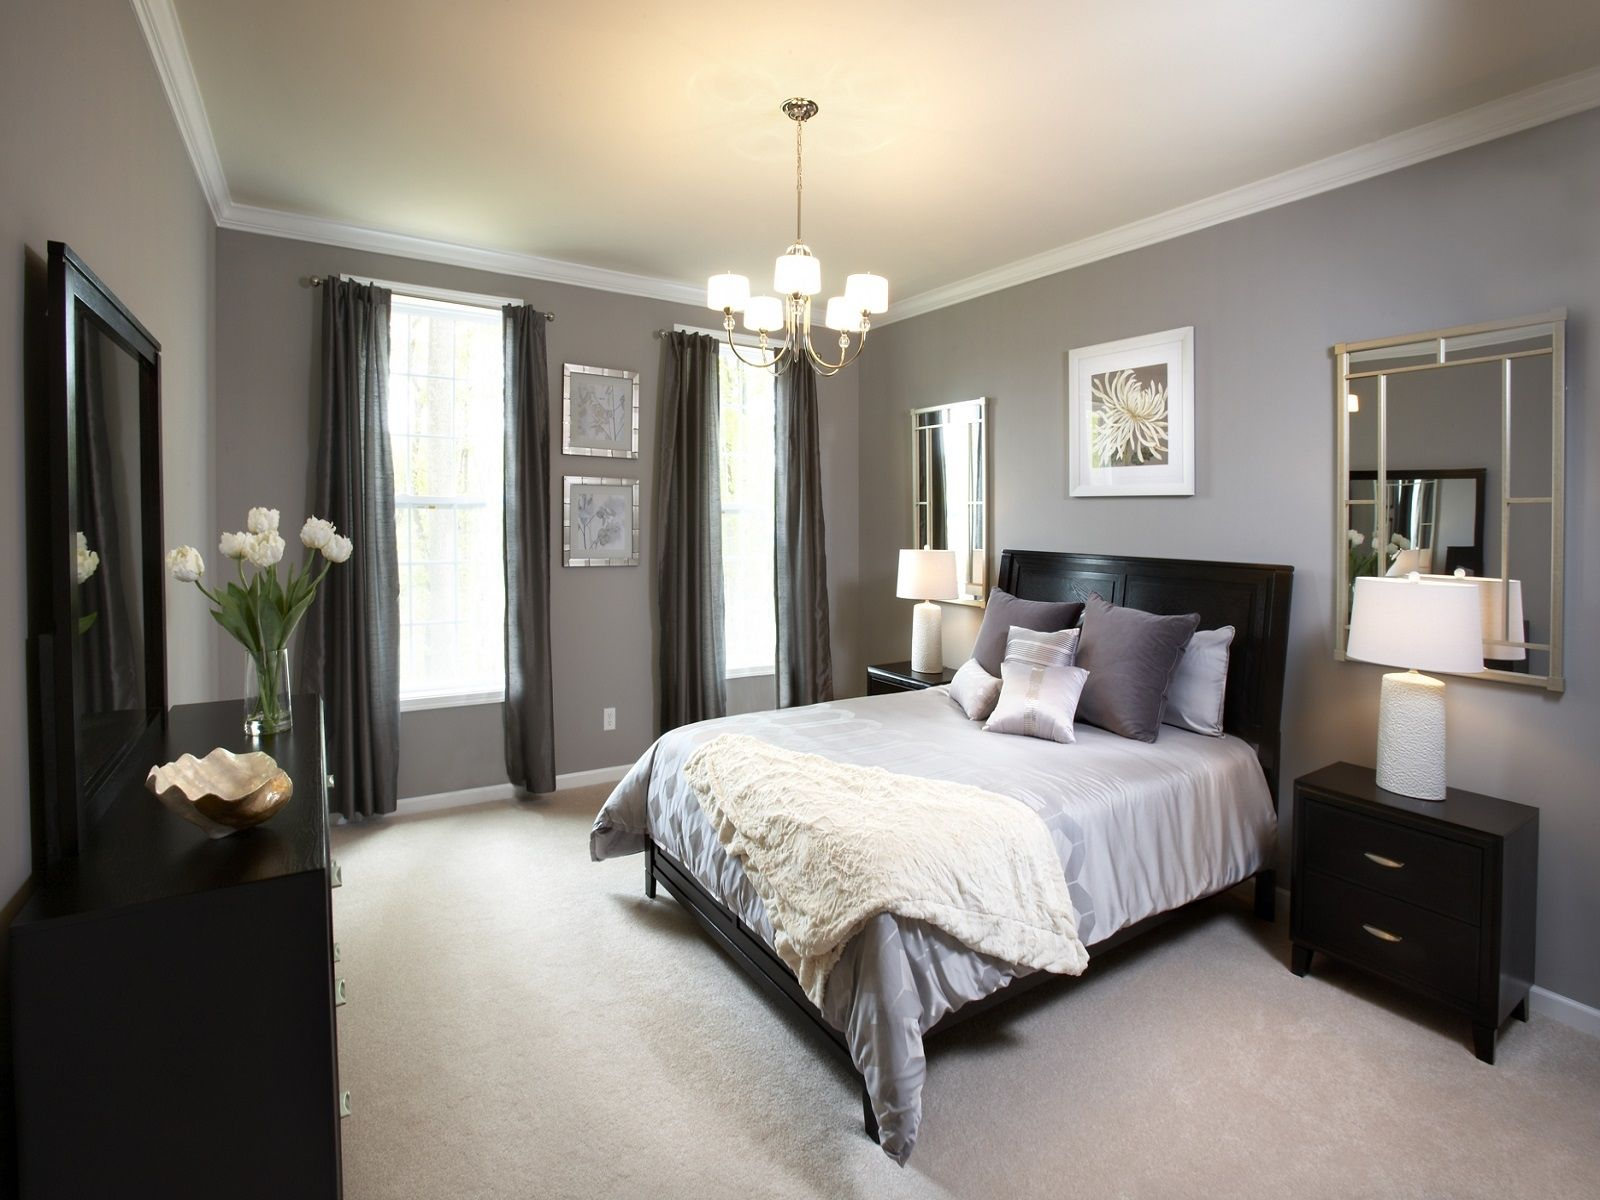 Brilliant Decorating Bedroom Ideas With Black Bed And Dark Dresser